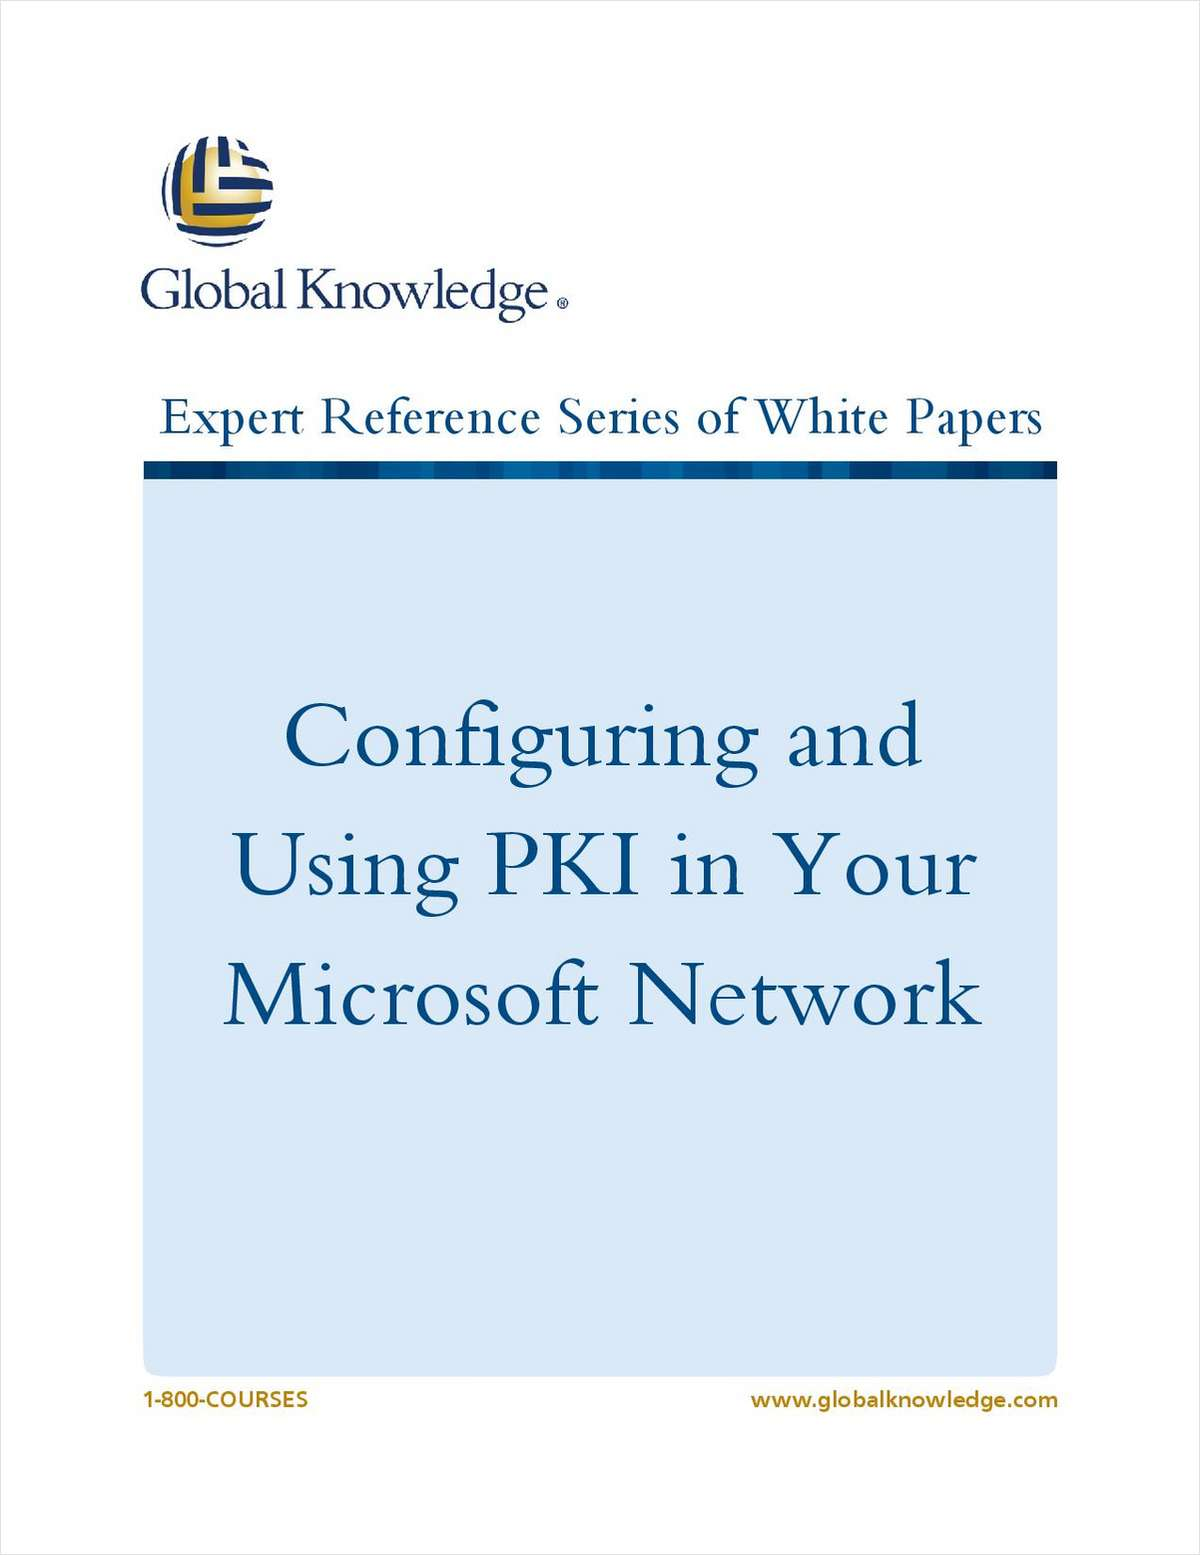 Configuring and Using PKI in Your Microsoft Network